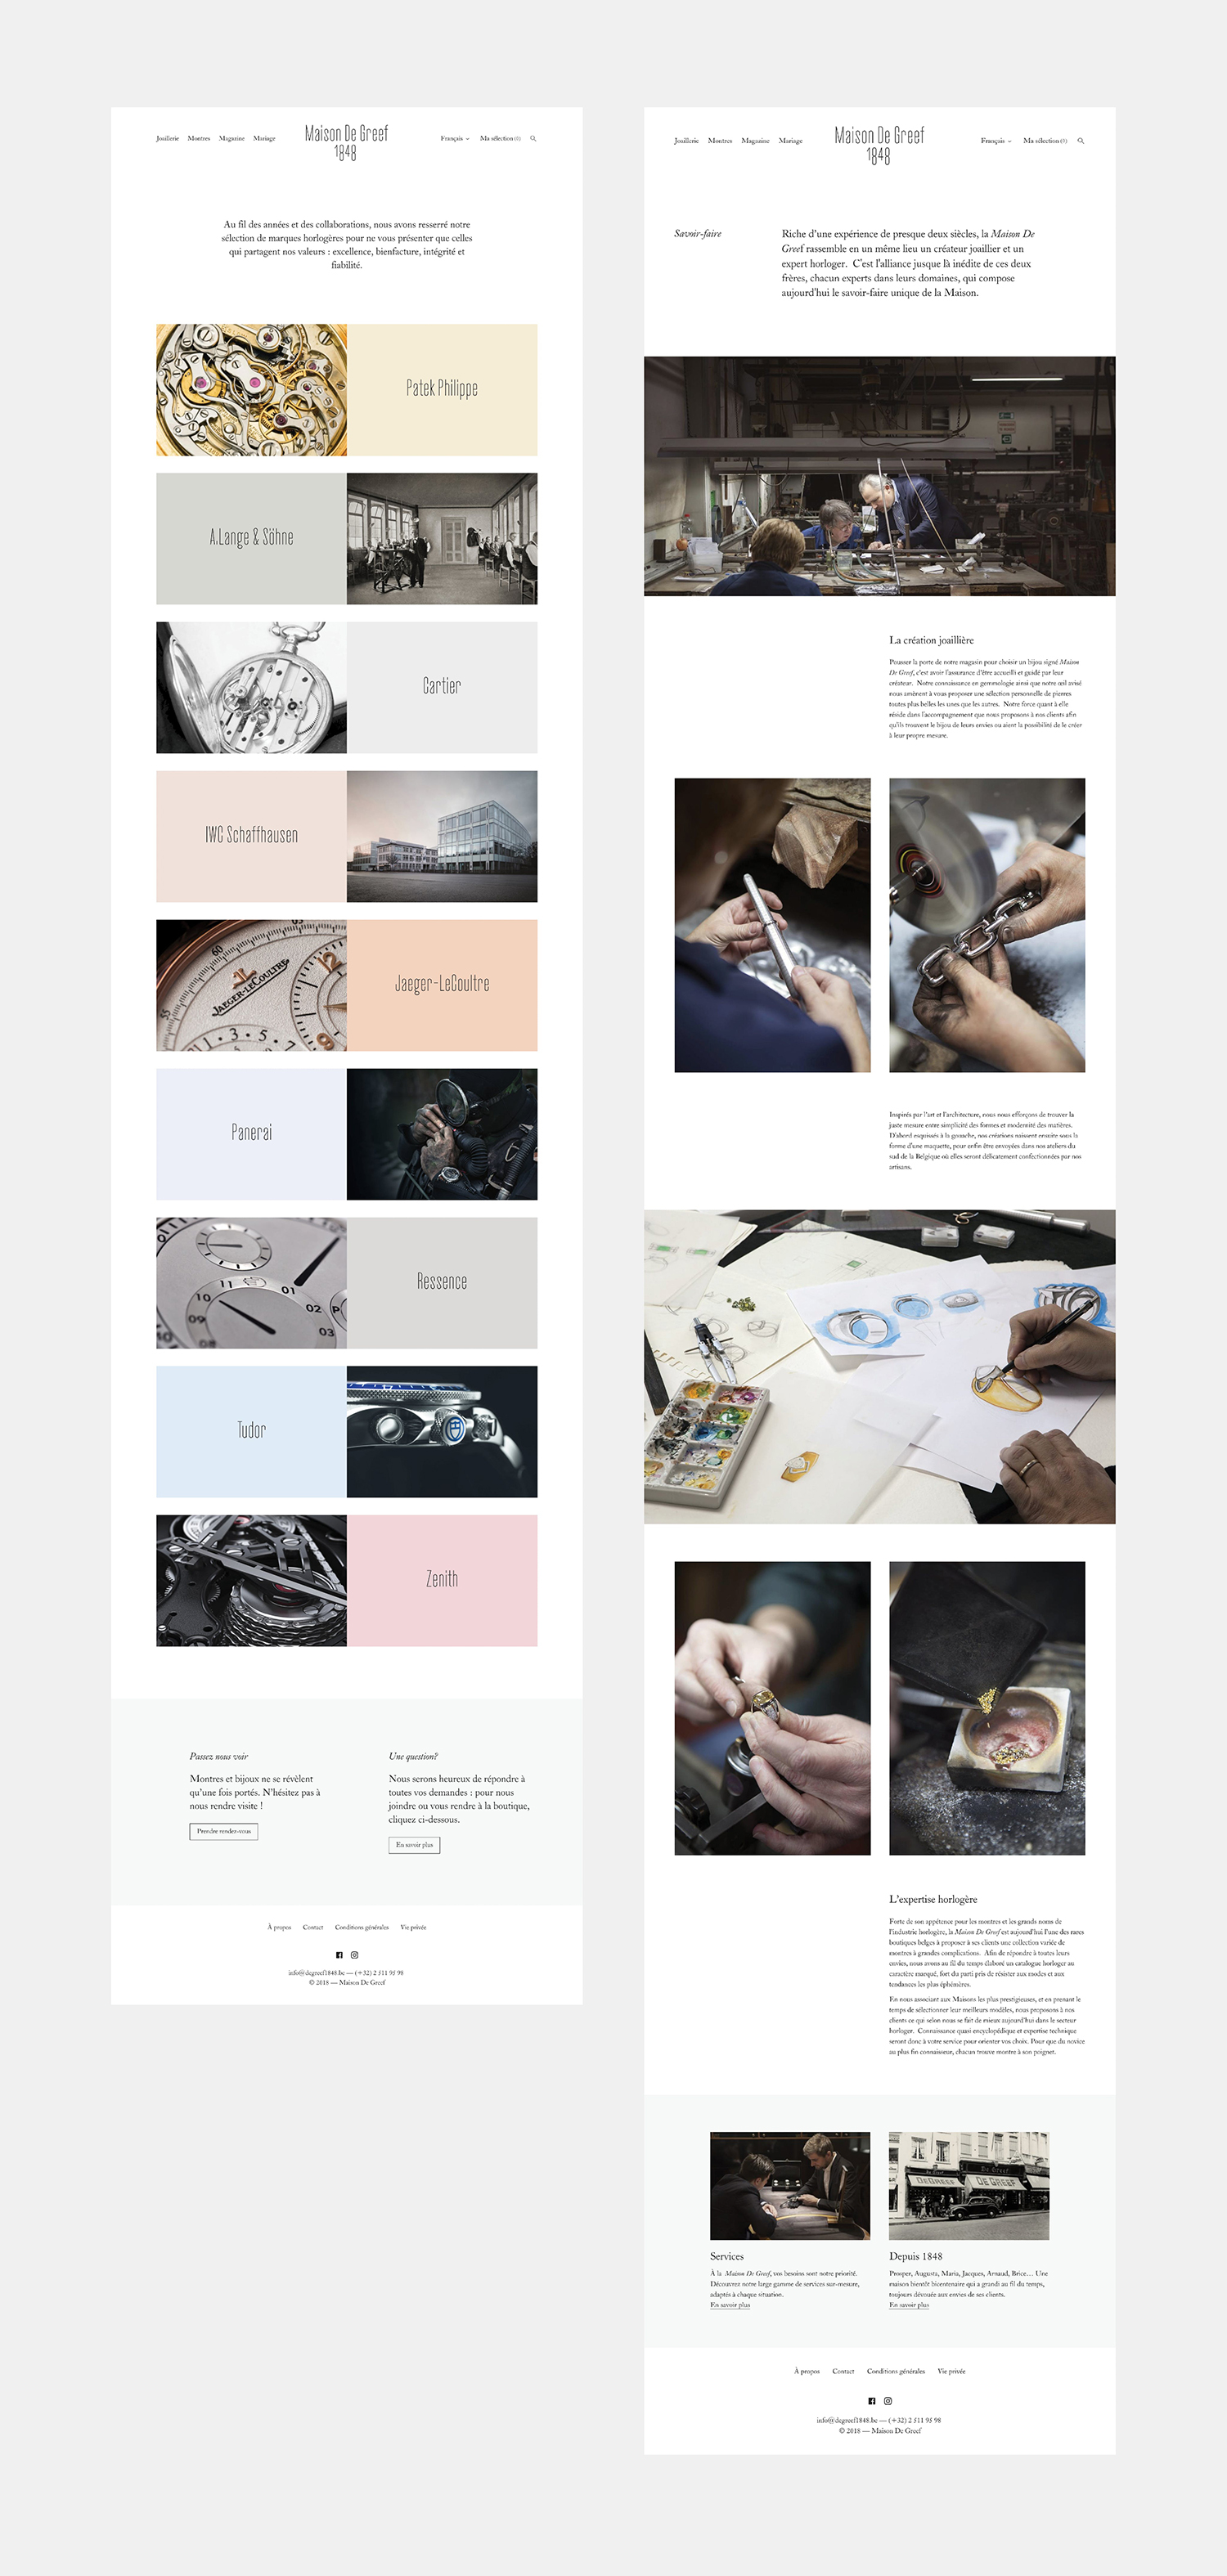 Website by Base Design for high-end jewellery brand, expert watchmaker and retailer Maison De Greef 1848